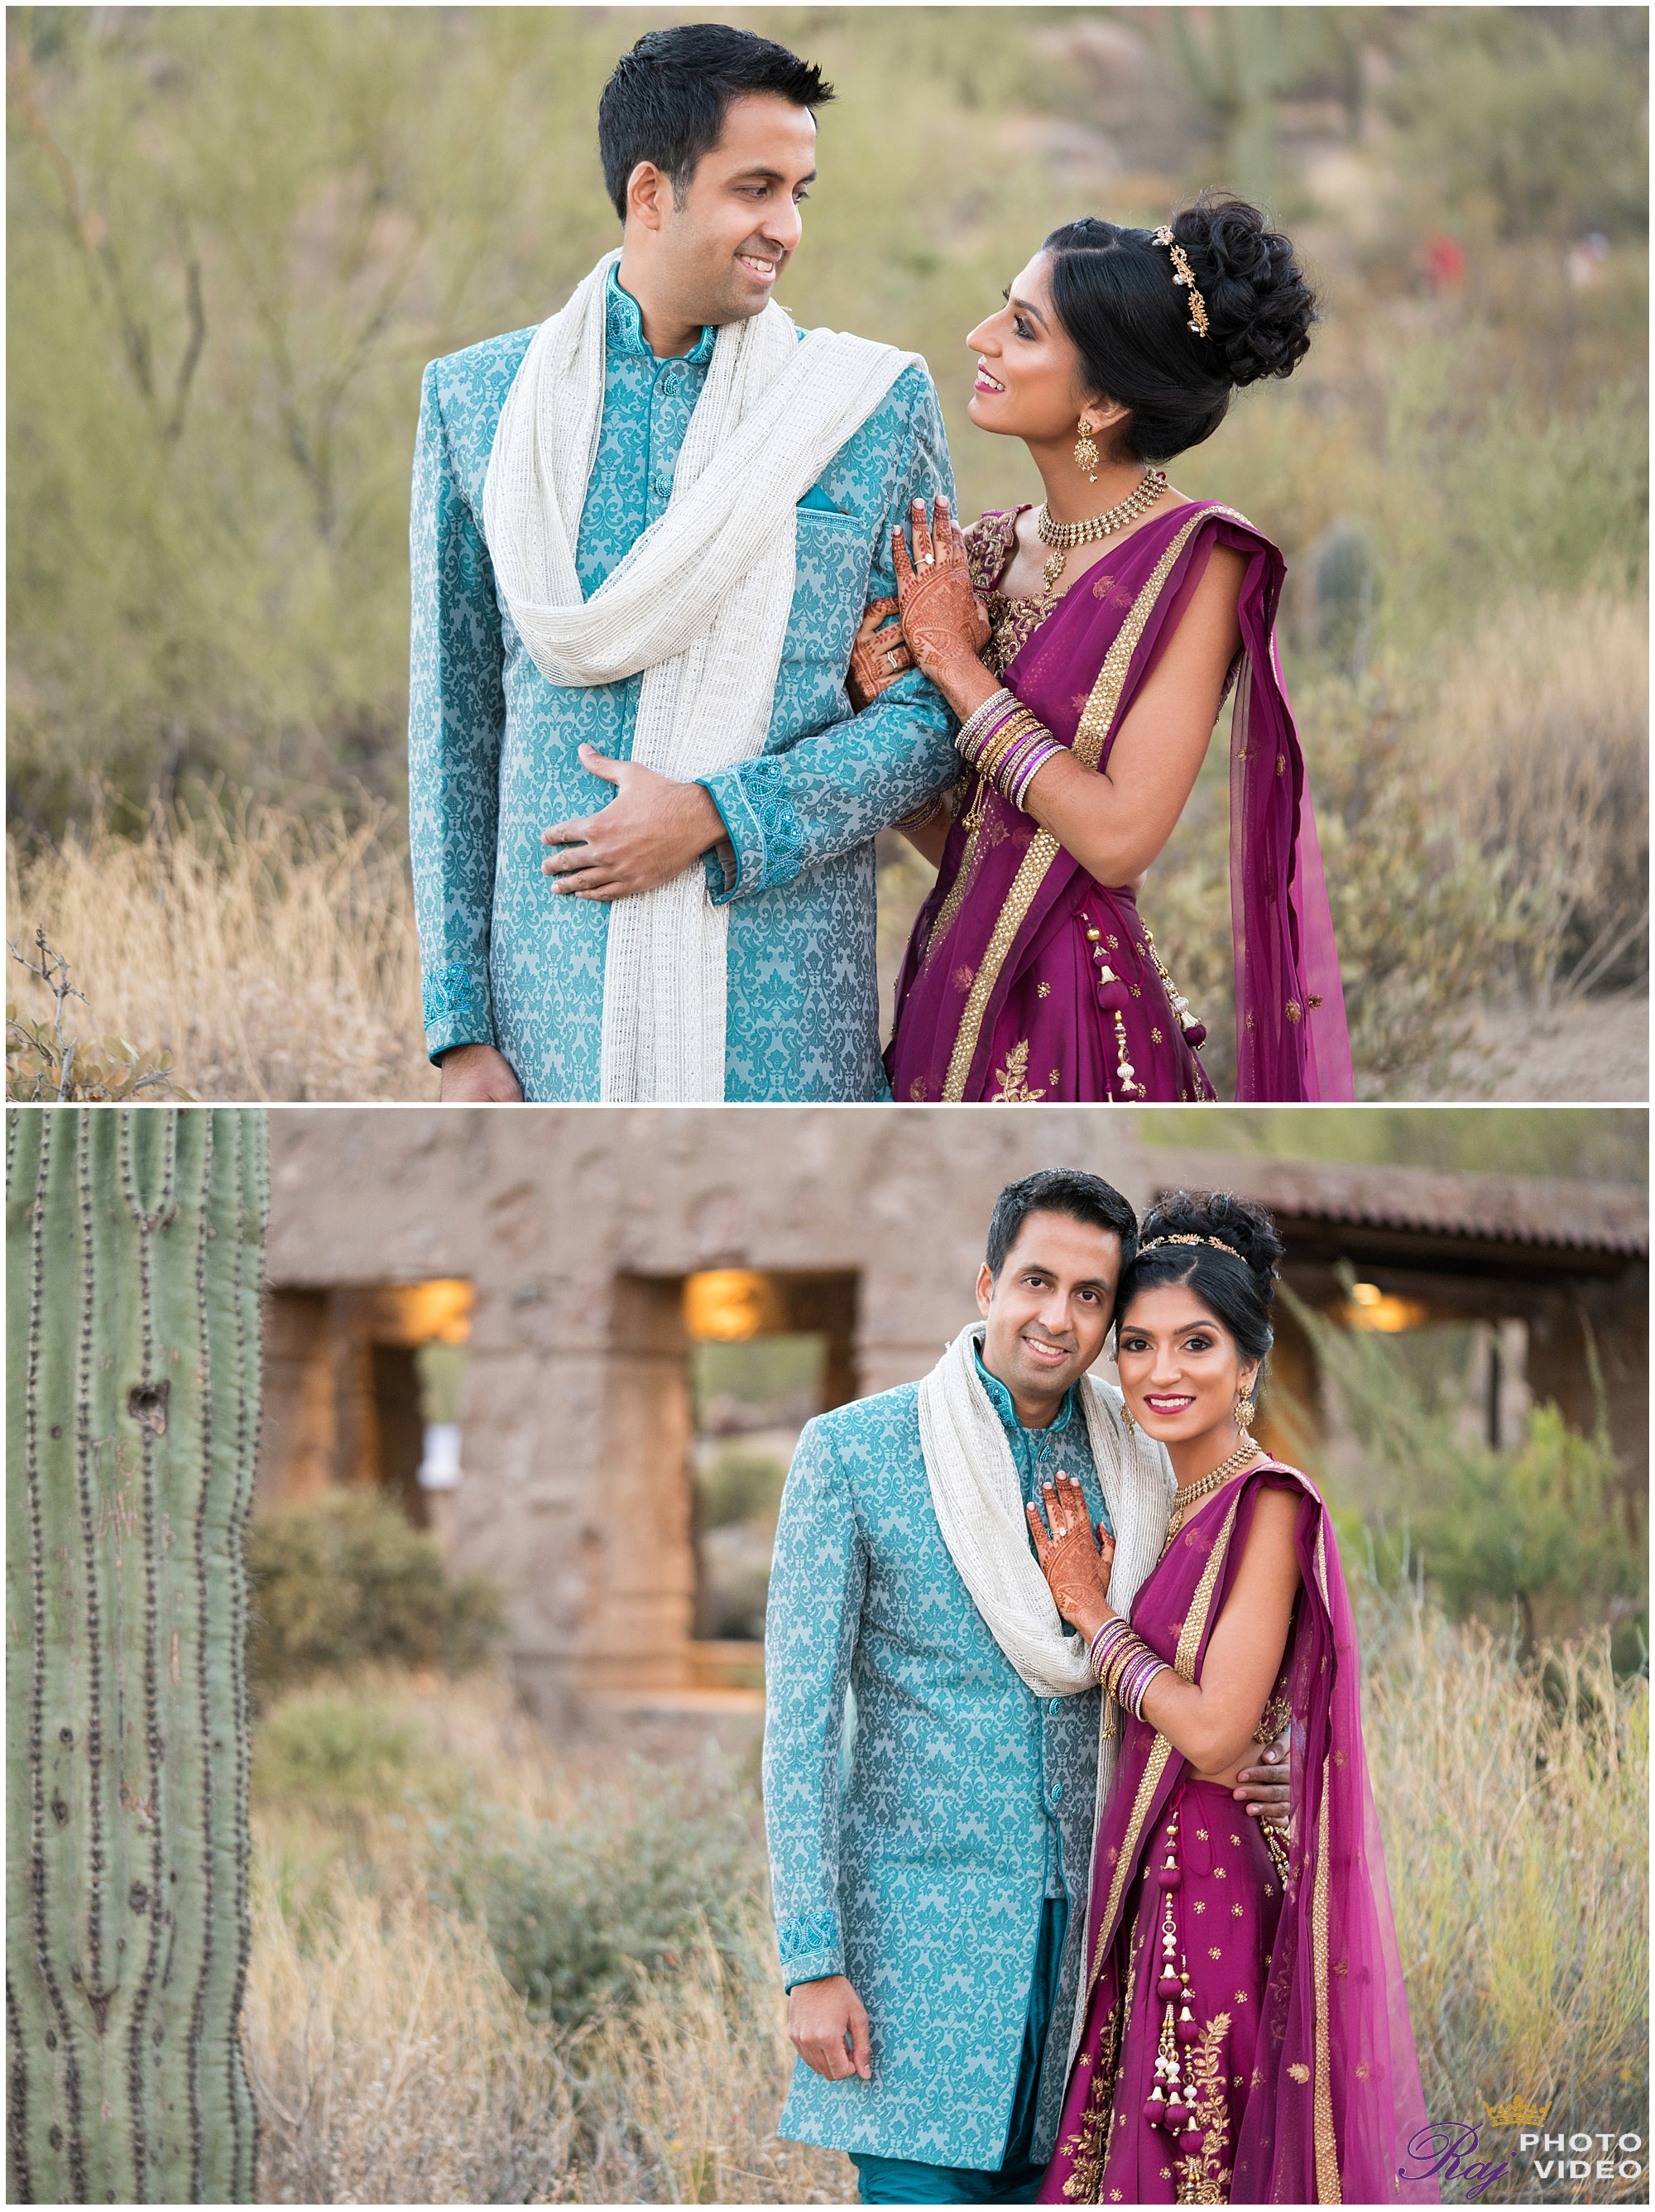 Pinnacle_Peak_Park_Scottsdale_Arizona_Sangeet_Photo_Shoot-6.jpg